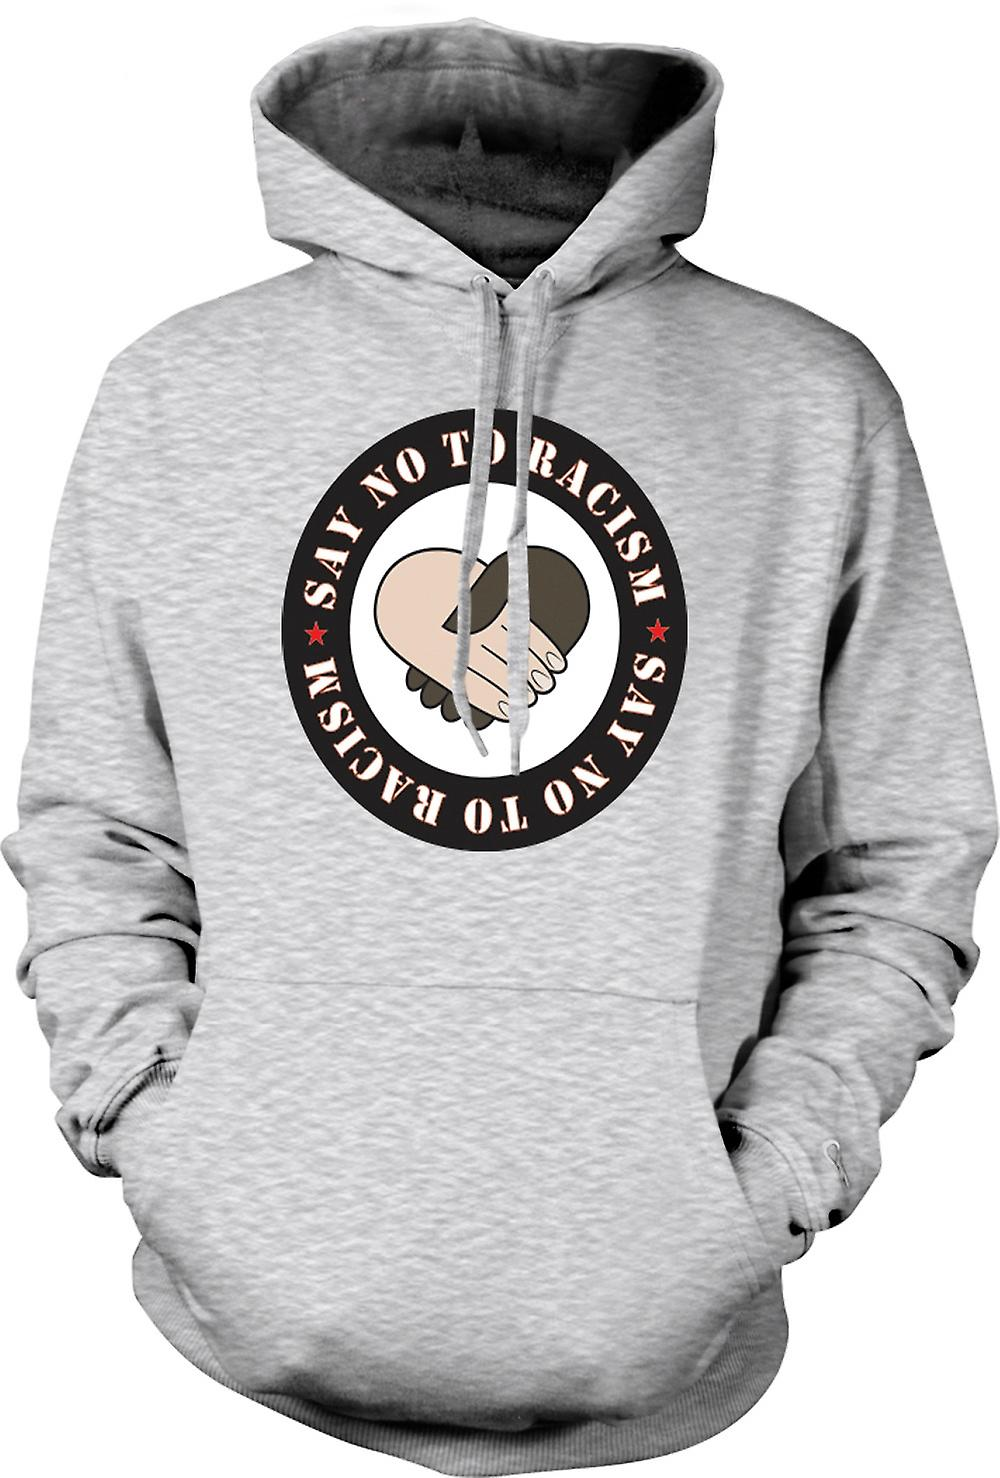 Mens Hoodie - Say No To Racism